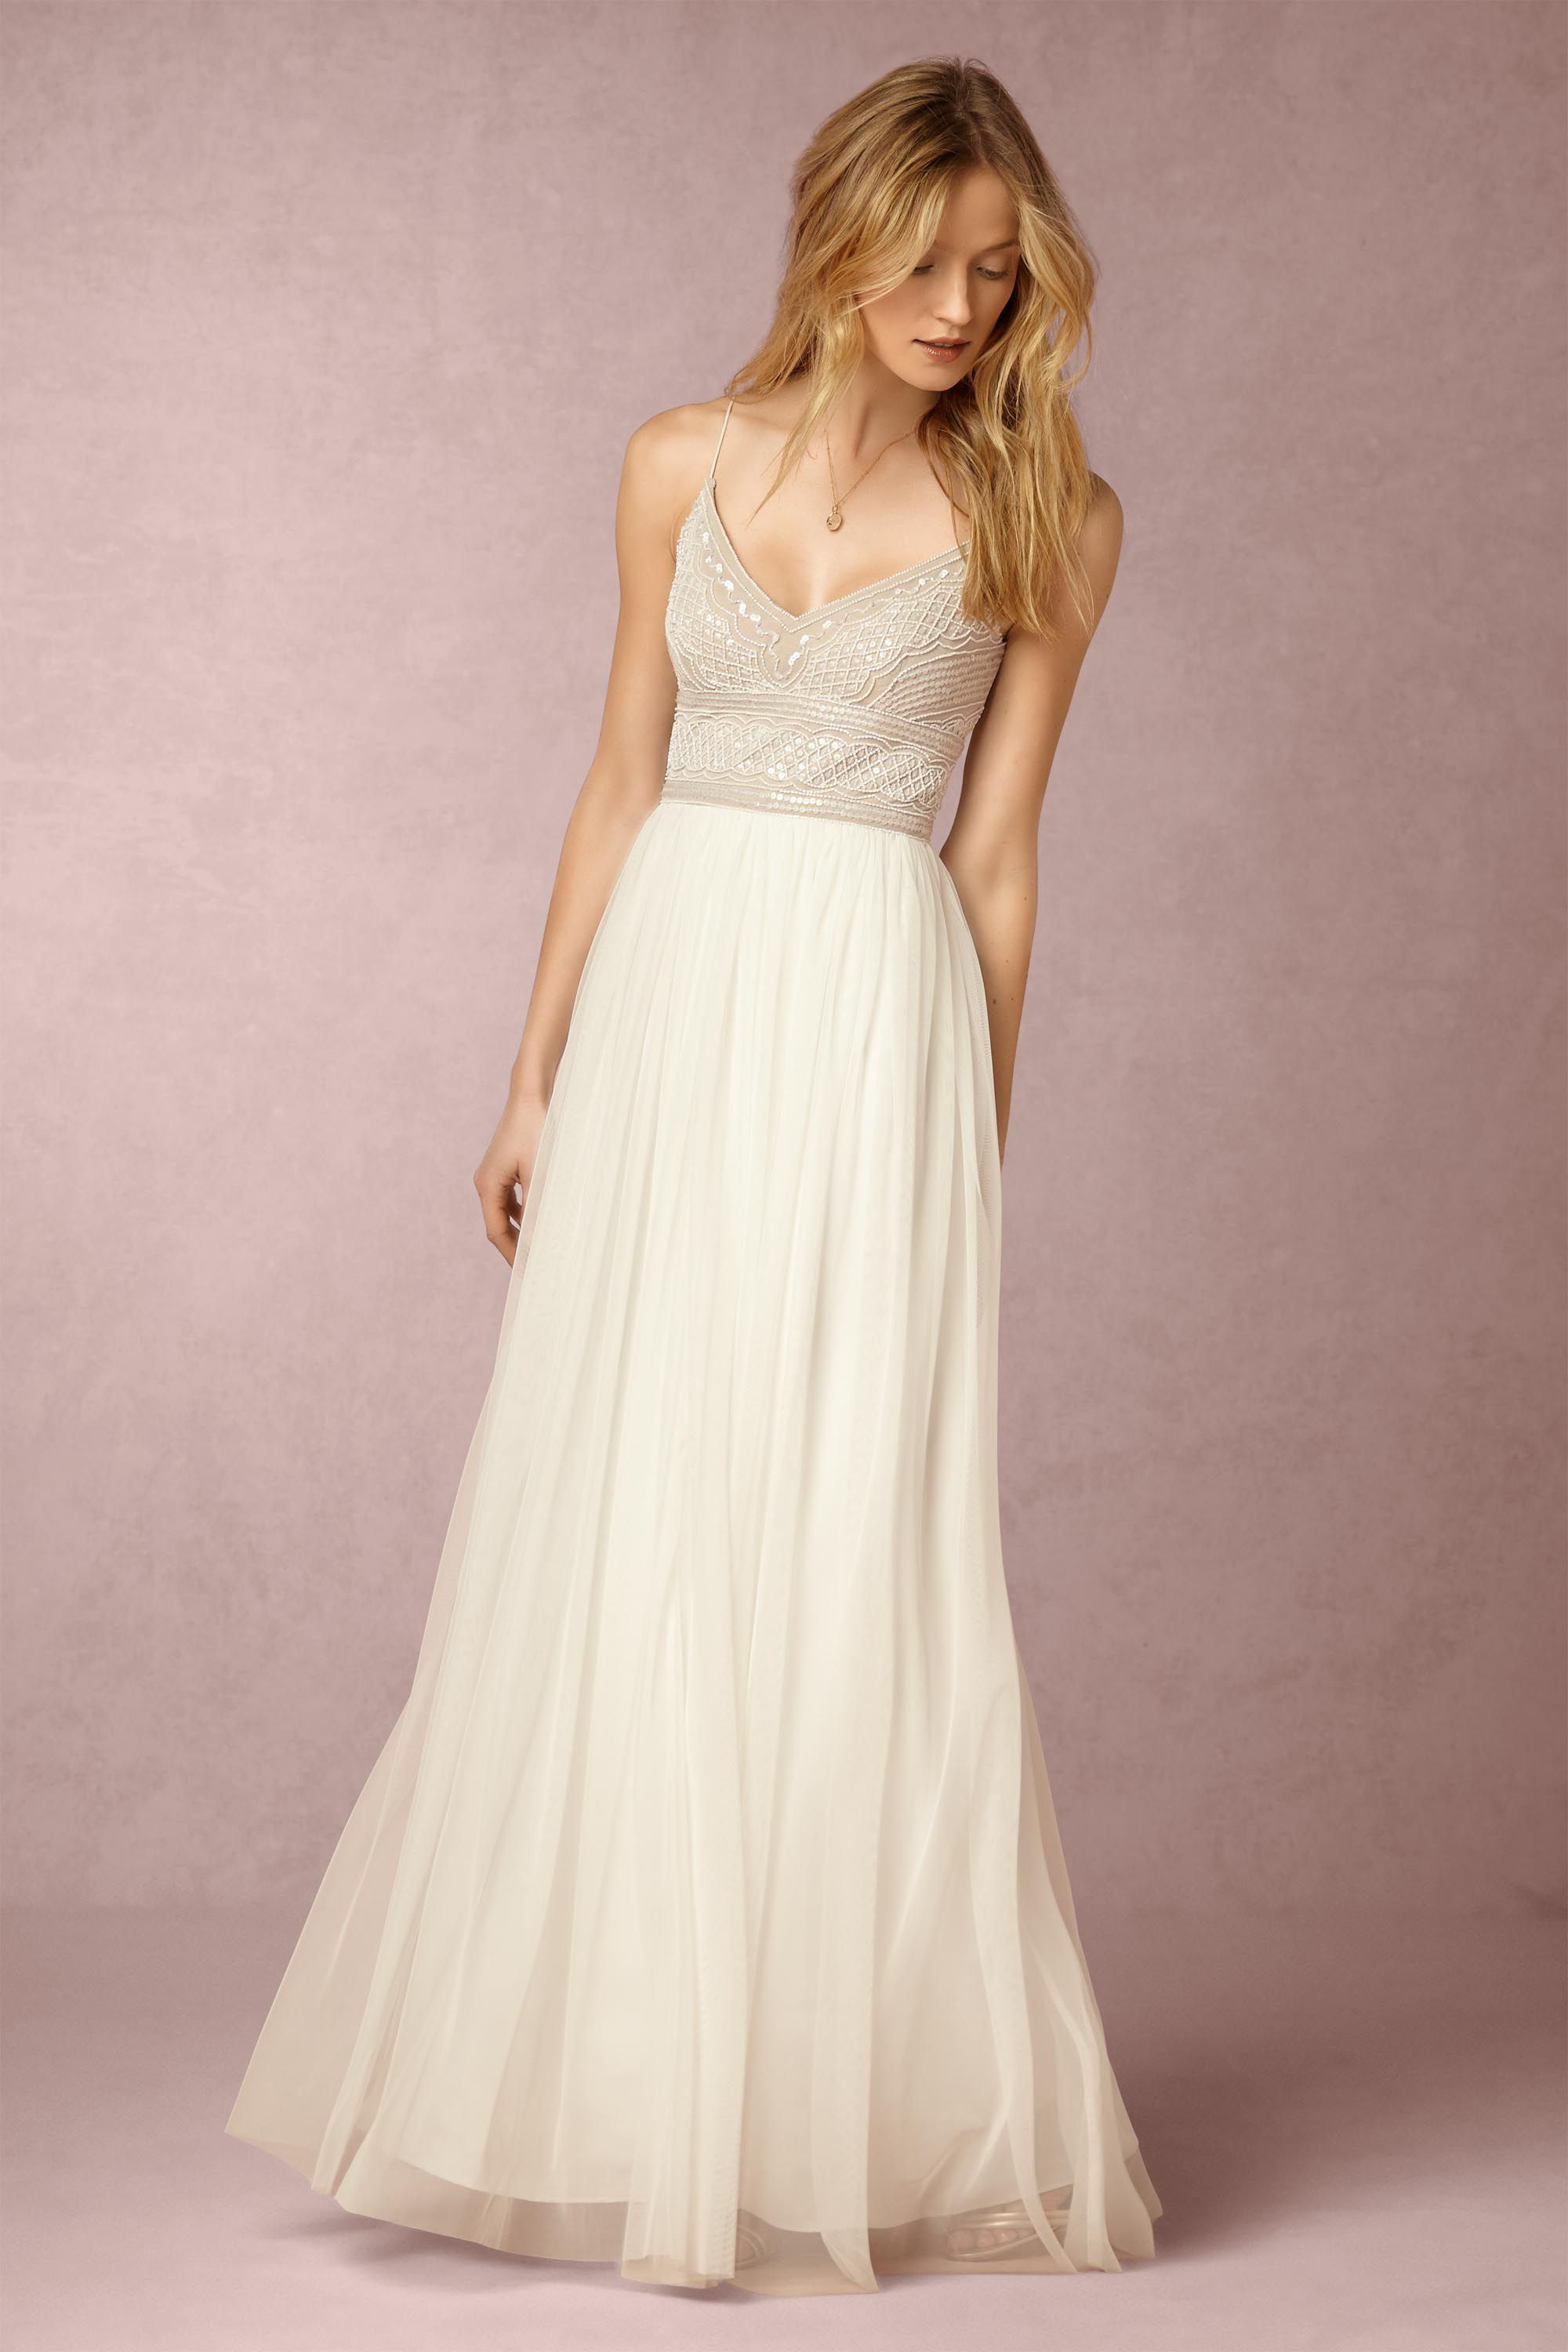 naya dress reception wedding dresses Adrianna Papell Ivory Nude Naya Dress BHLDN